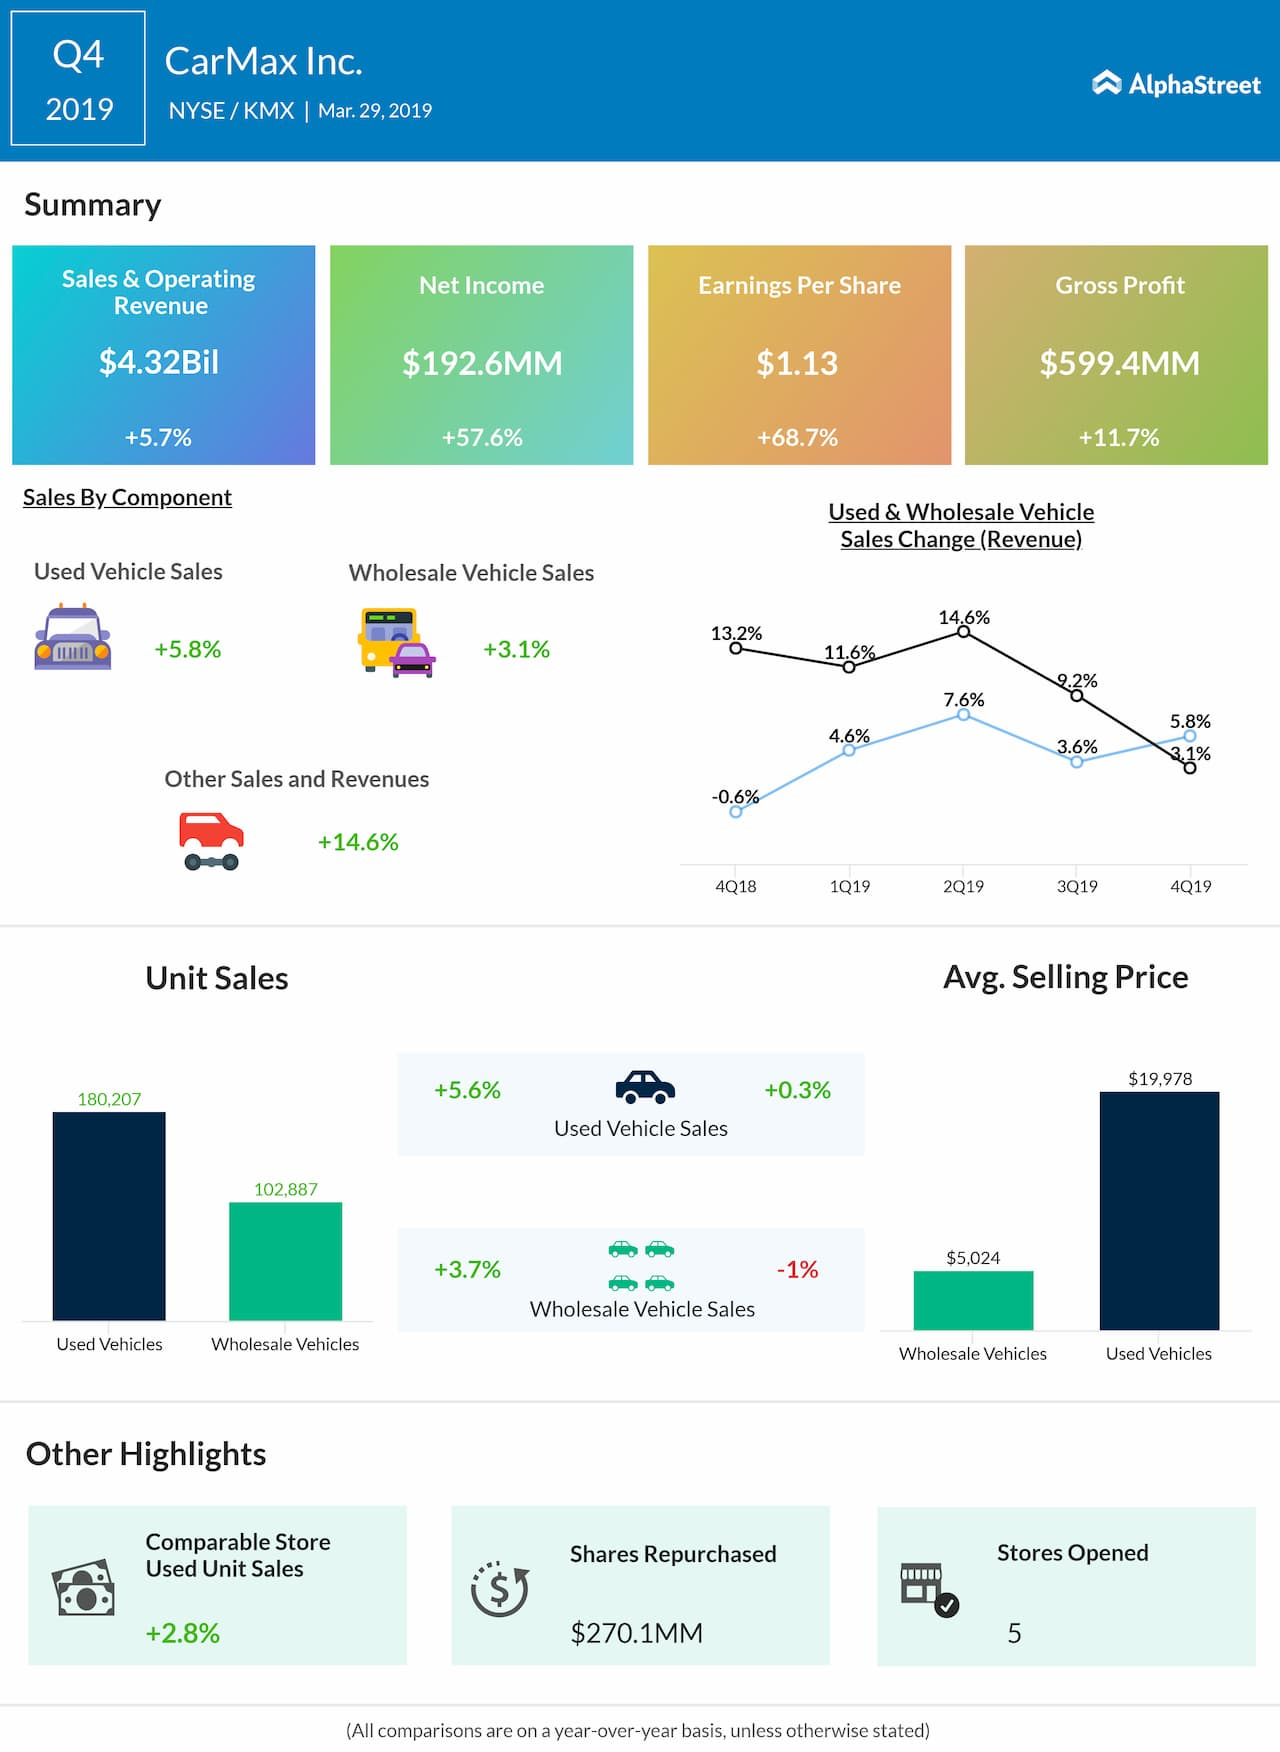 Carmax fourth quarter 2019 earnings snapshot